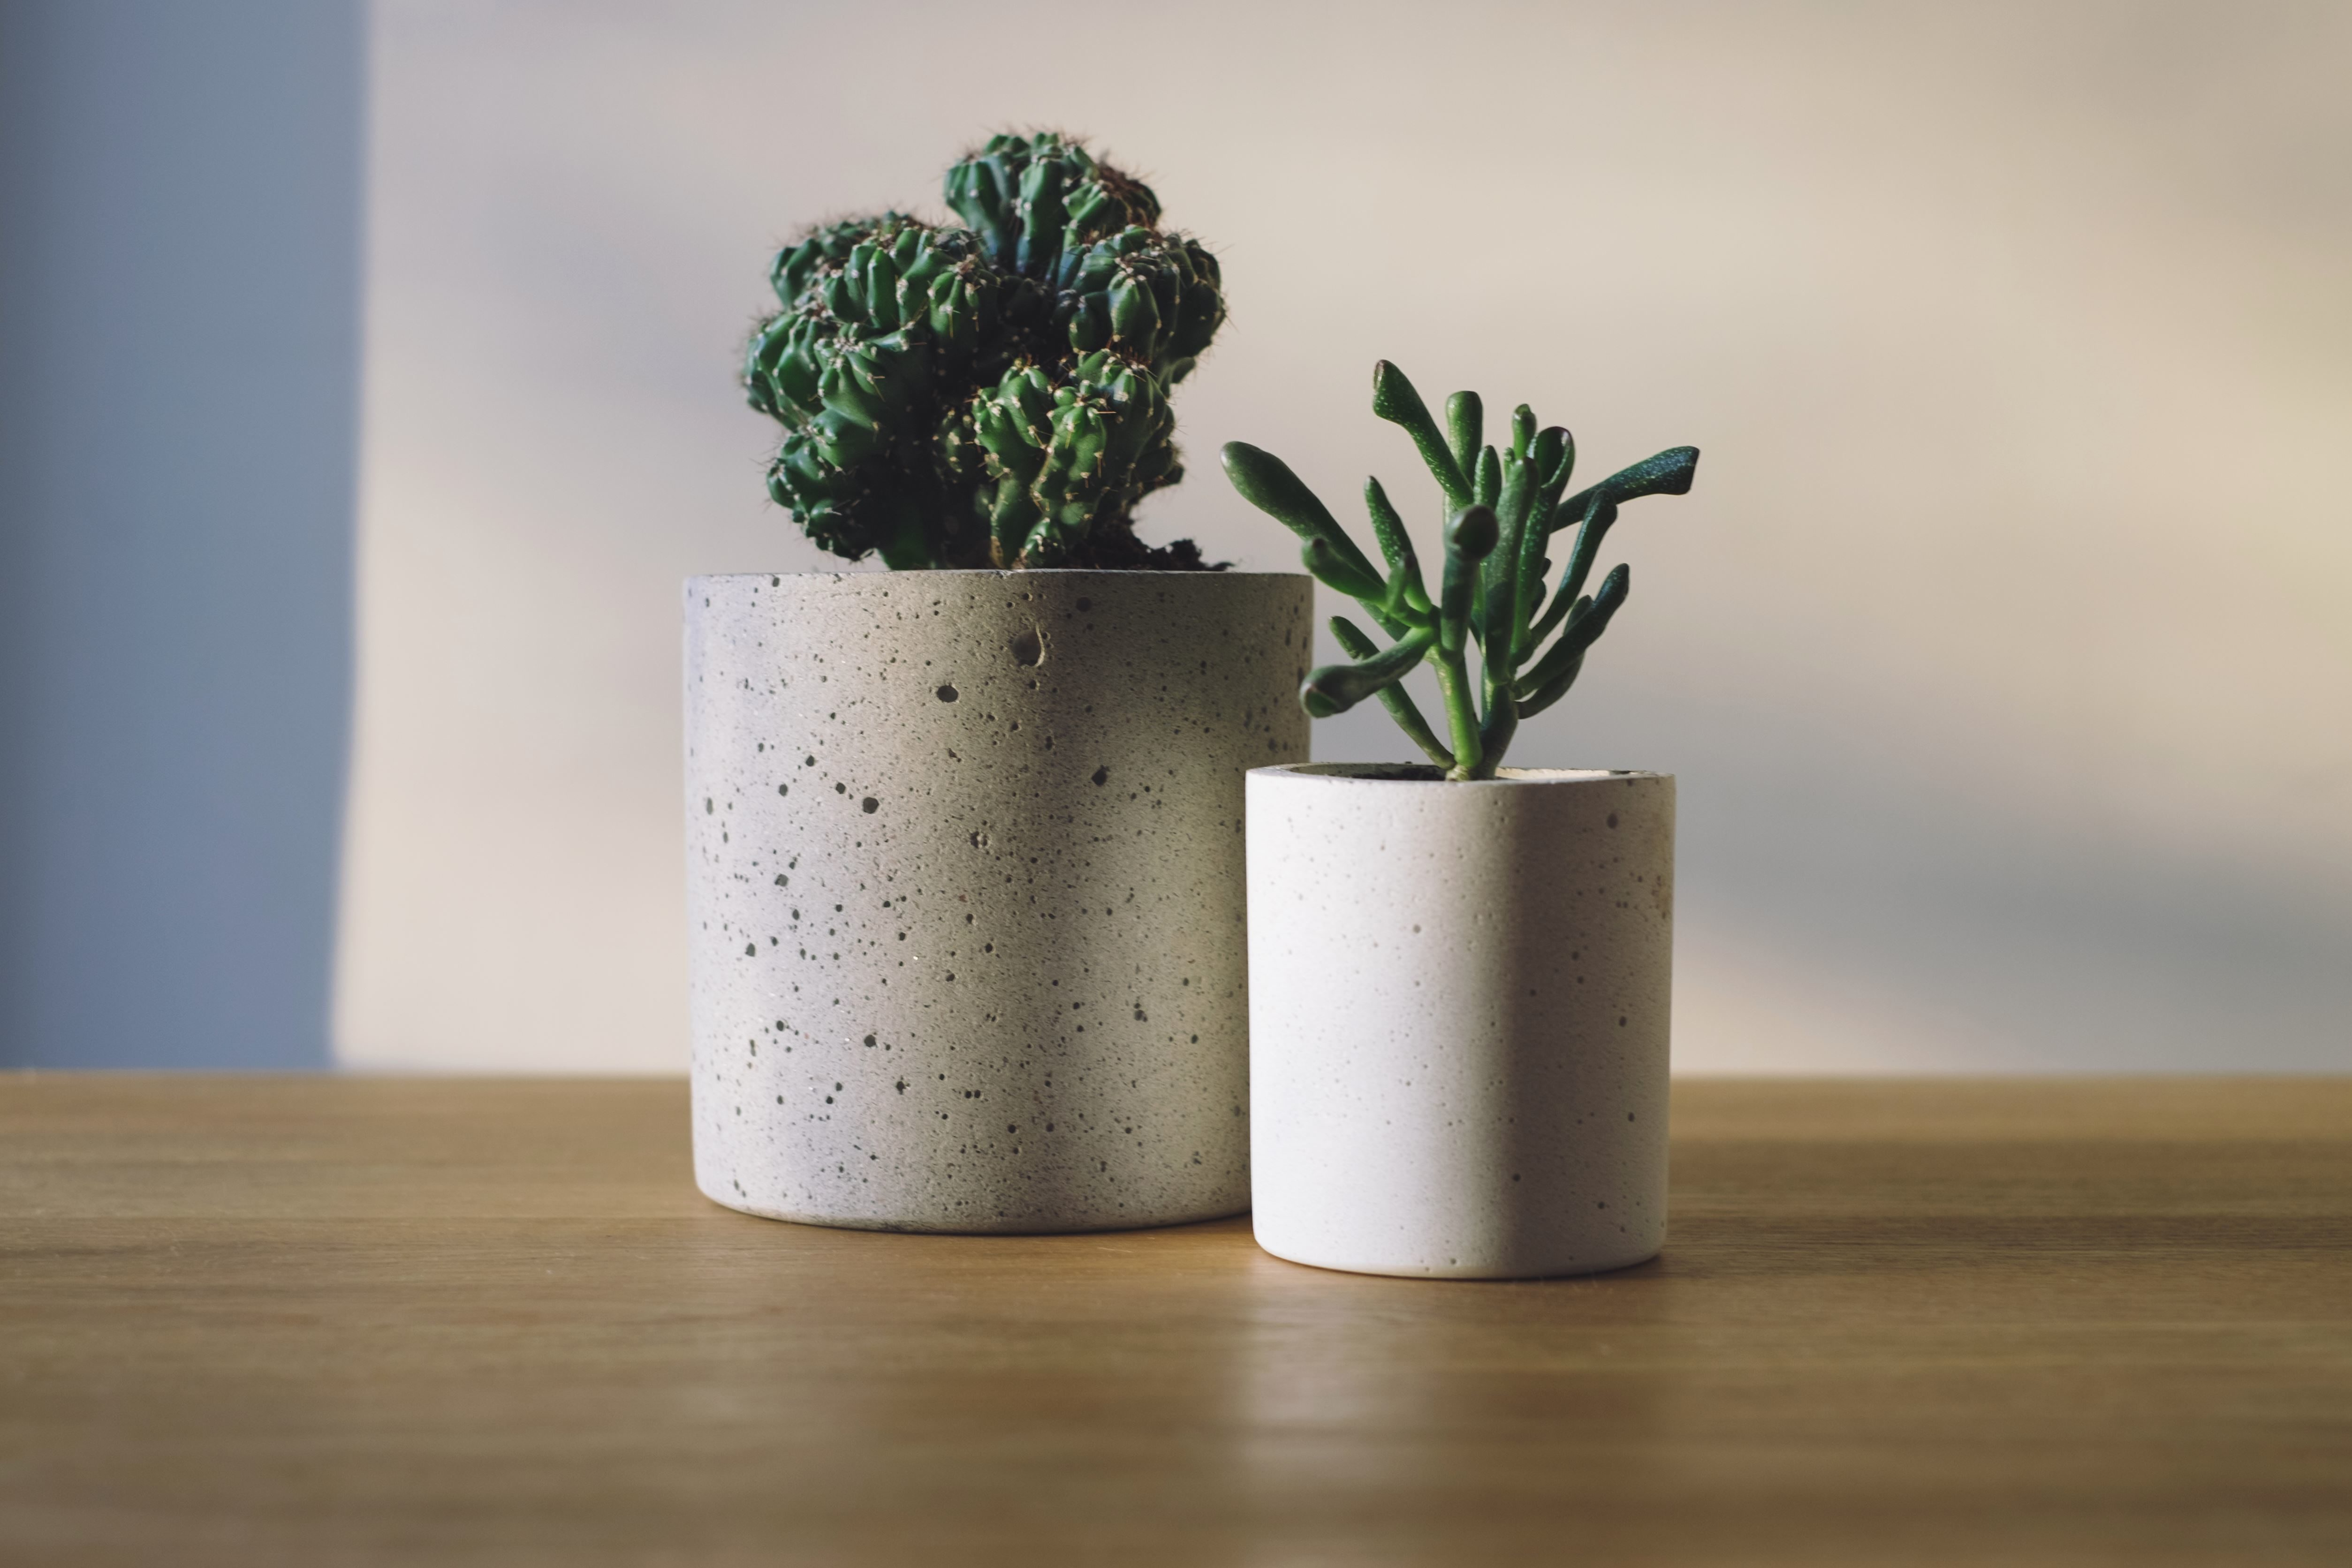 Free picture green plants cactus pots table